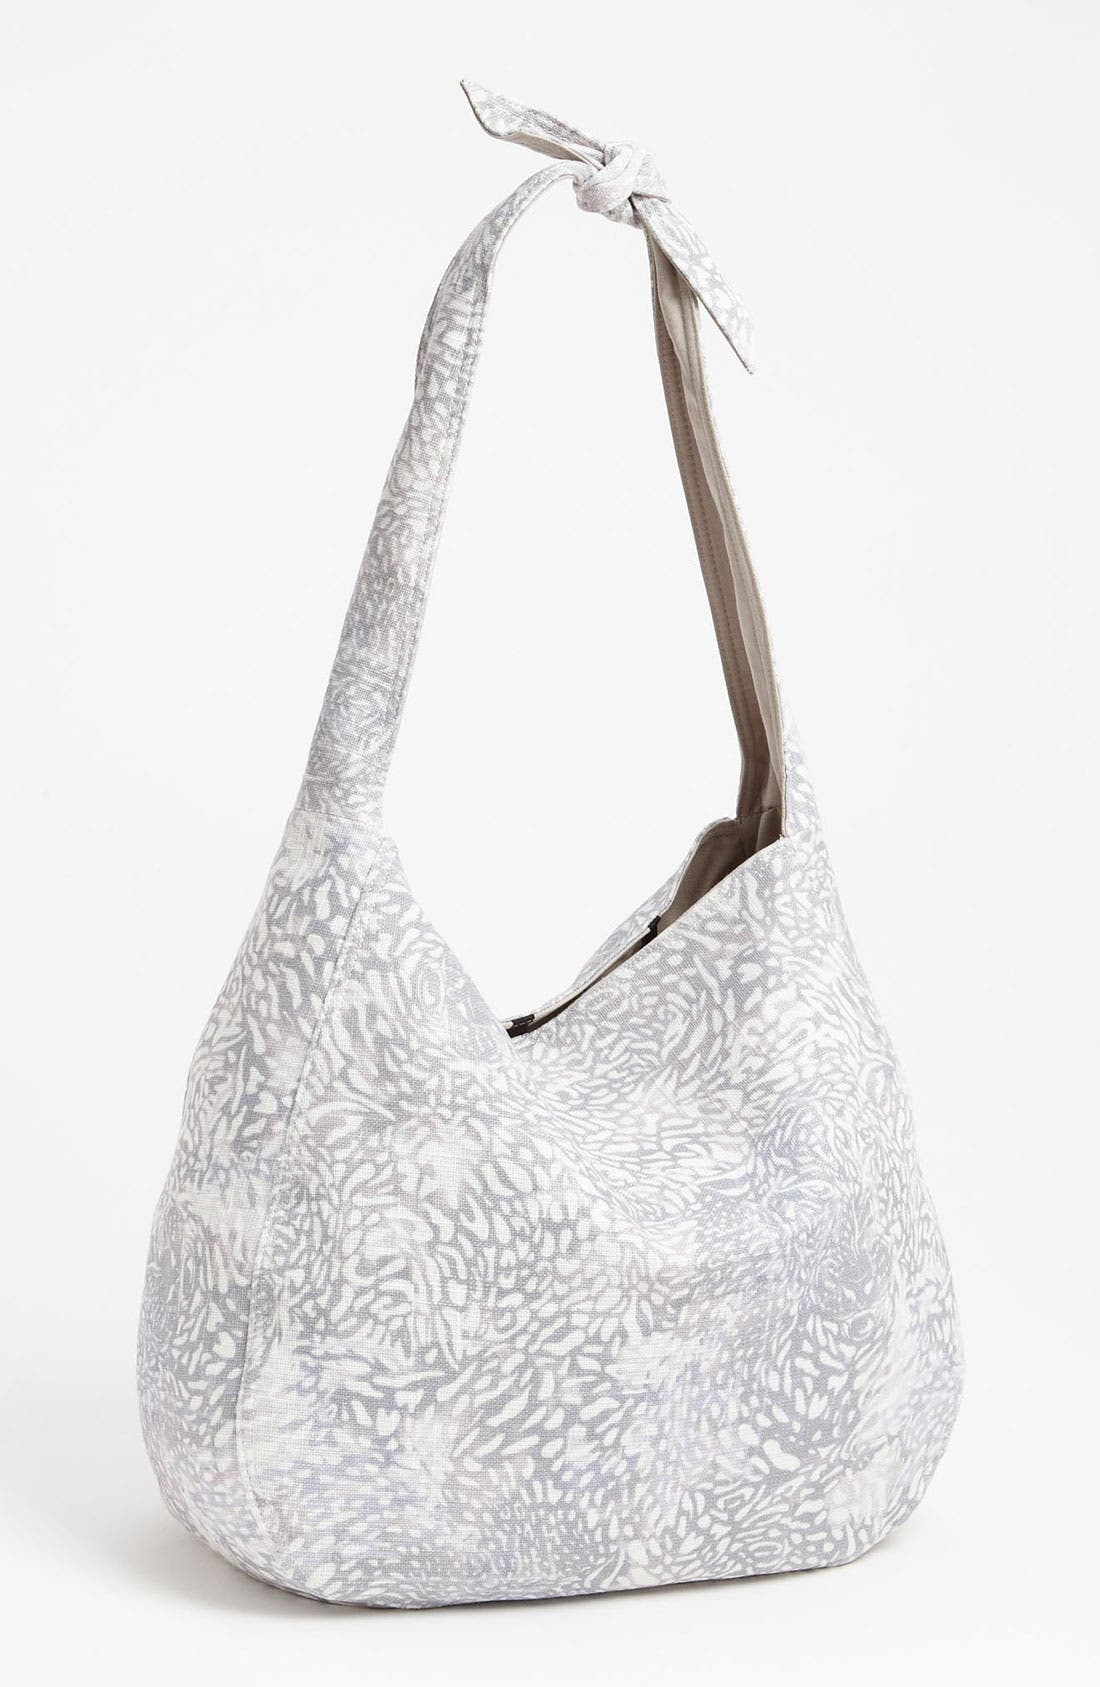 Alternate Image 1 Selected - Foley + Corinna 'Leopard' Beach Bag